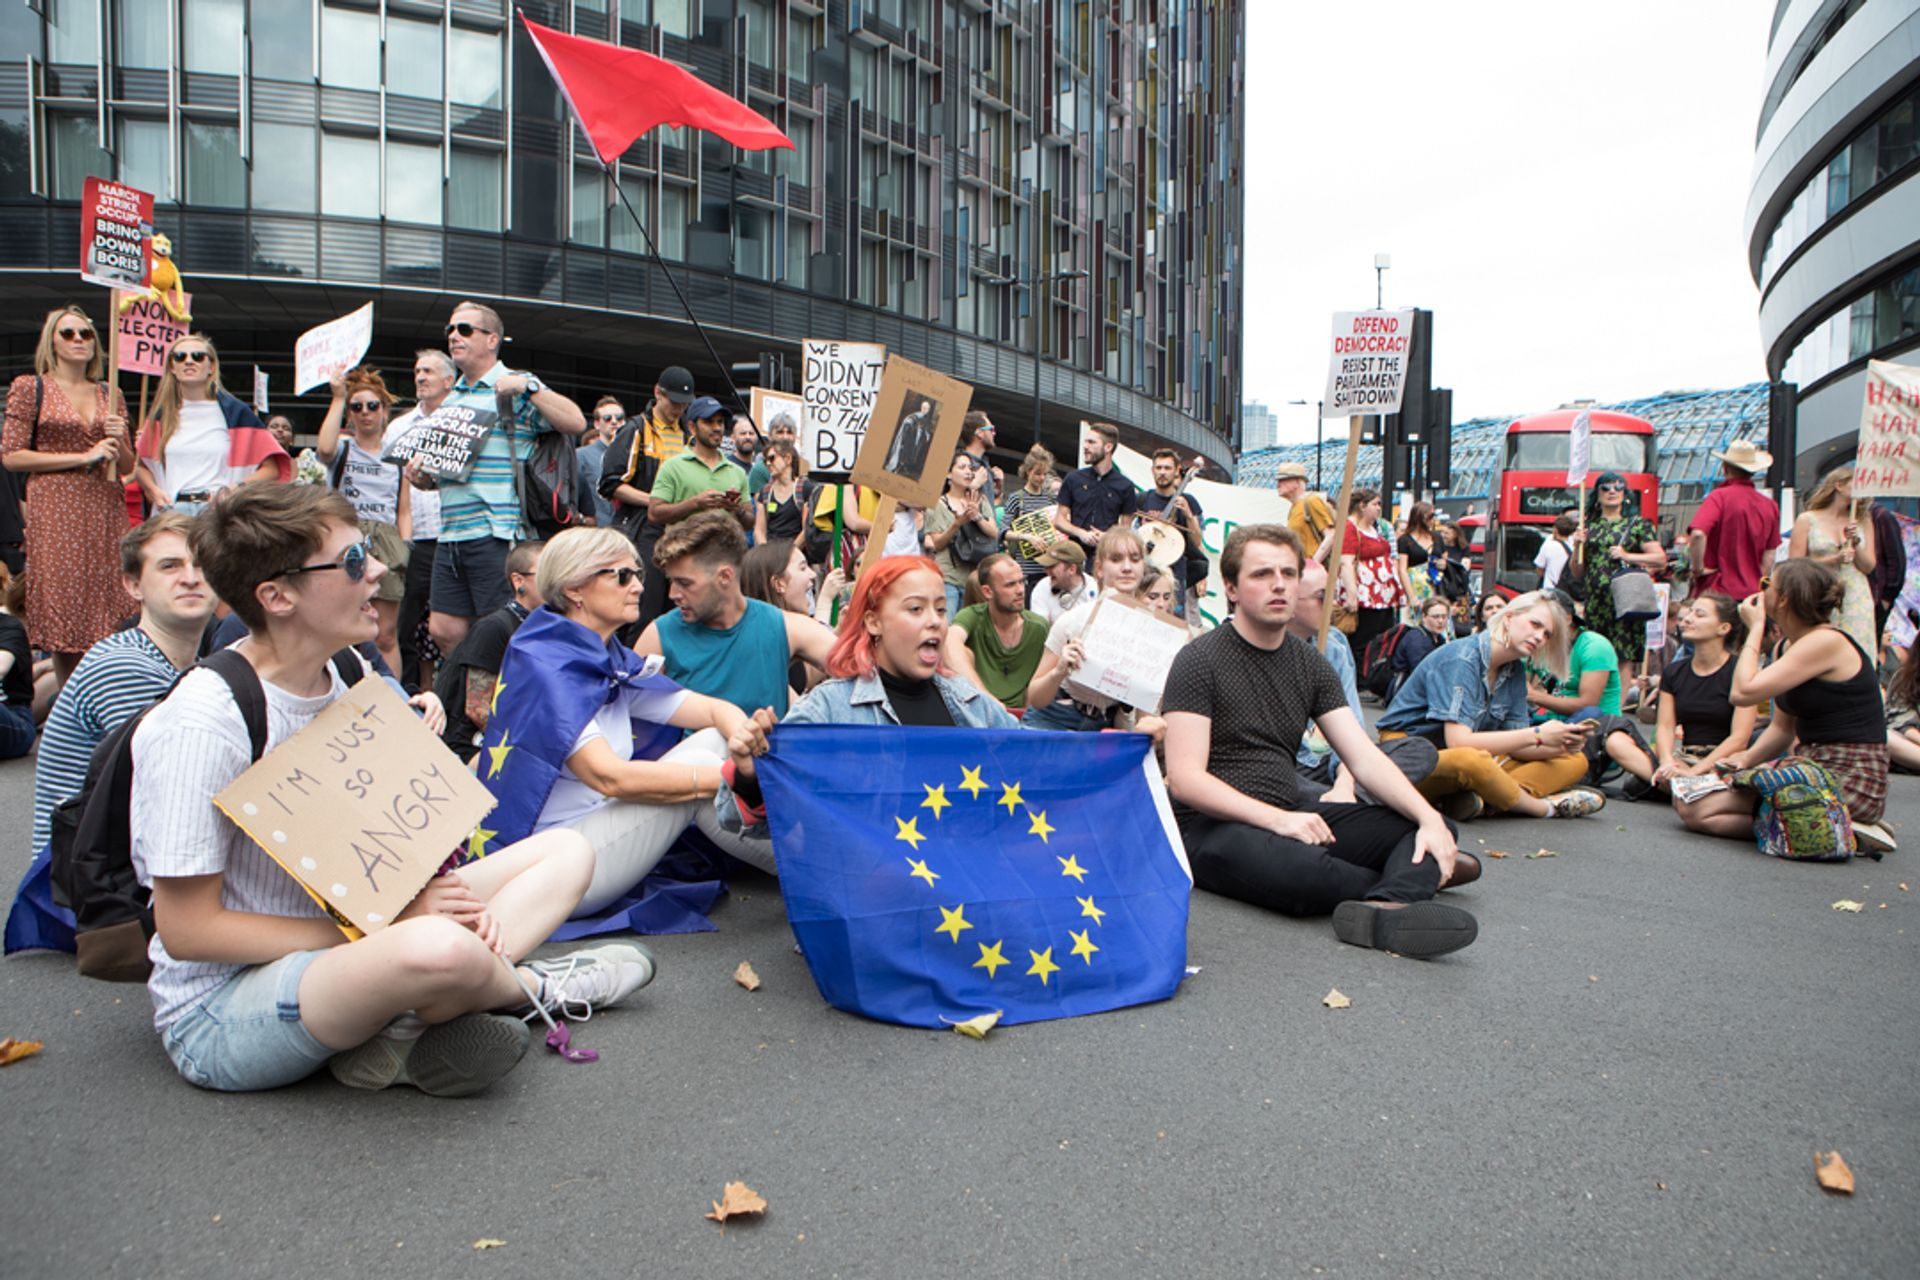 It is estimated that around 73% of people under 24 voted to remain in the European Union Photo: David Owens